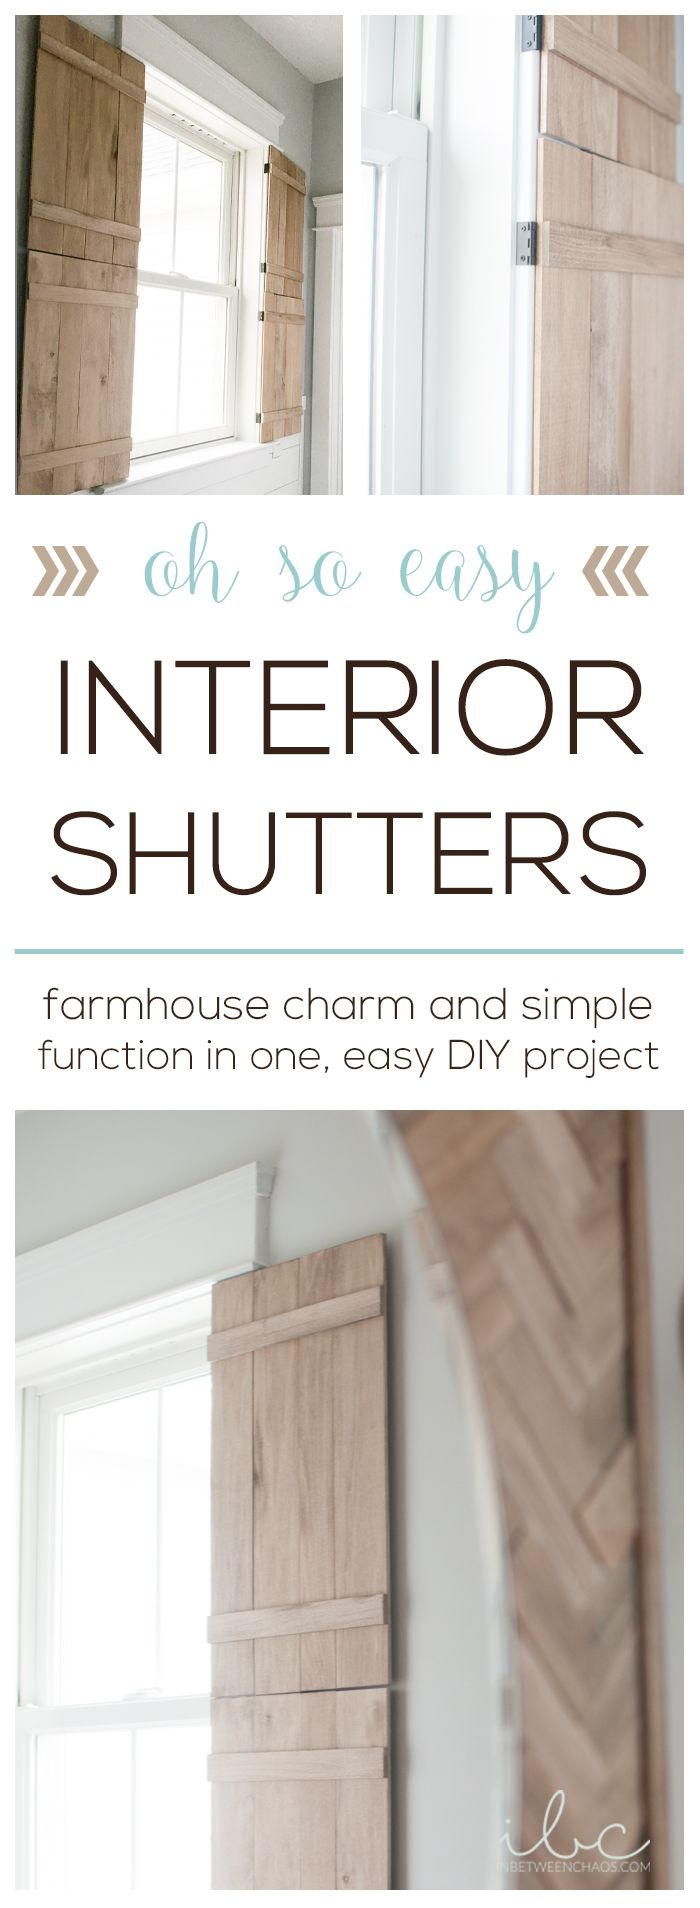 Best 25 Interior Window Shutters Ideas On Pinterest Interior Shutters Diy Interior Shutters